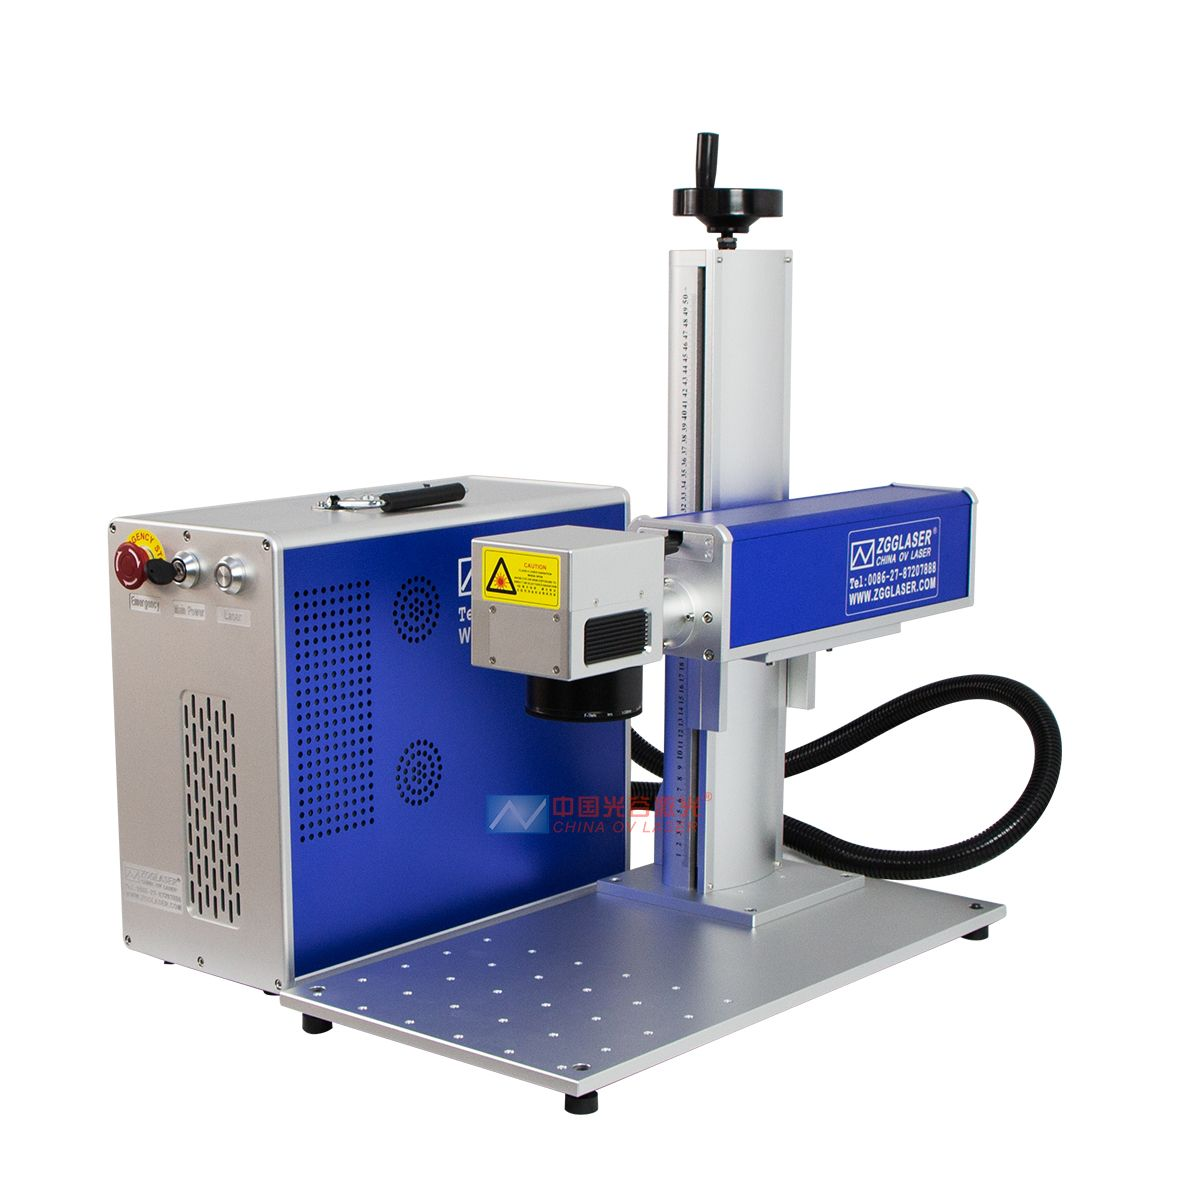 Cnc 10w 20w 30w 50w Fiber Laser Marking Machine For Metal Steel Aluminum Brass Copper View 10w 20w 30w 50w Fiber Laser Marking Machine Ov Laser Product Detail Laser Marking Laser